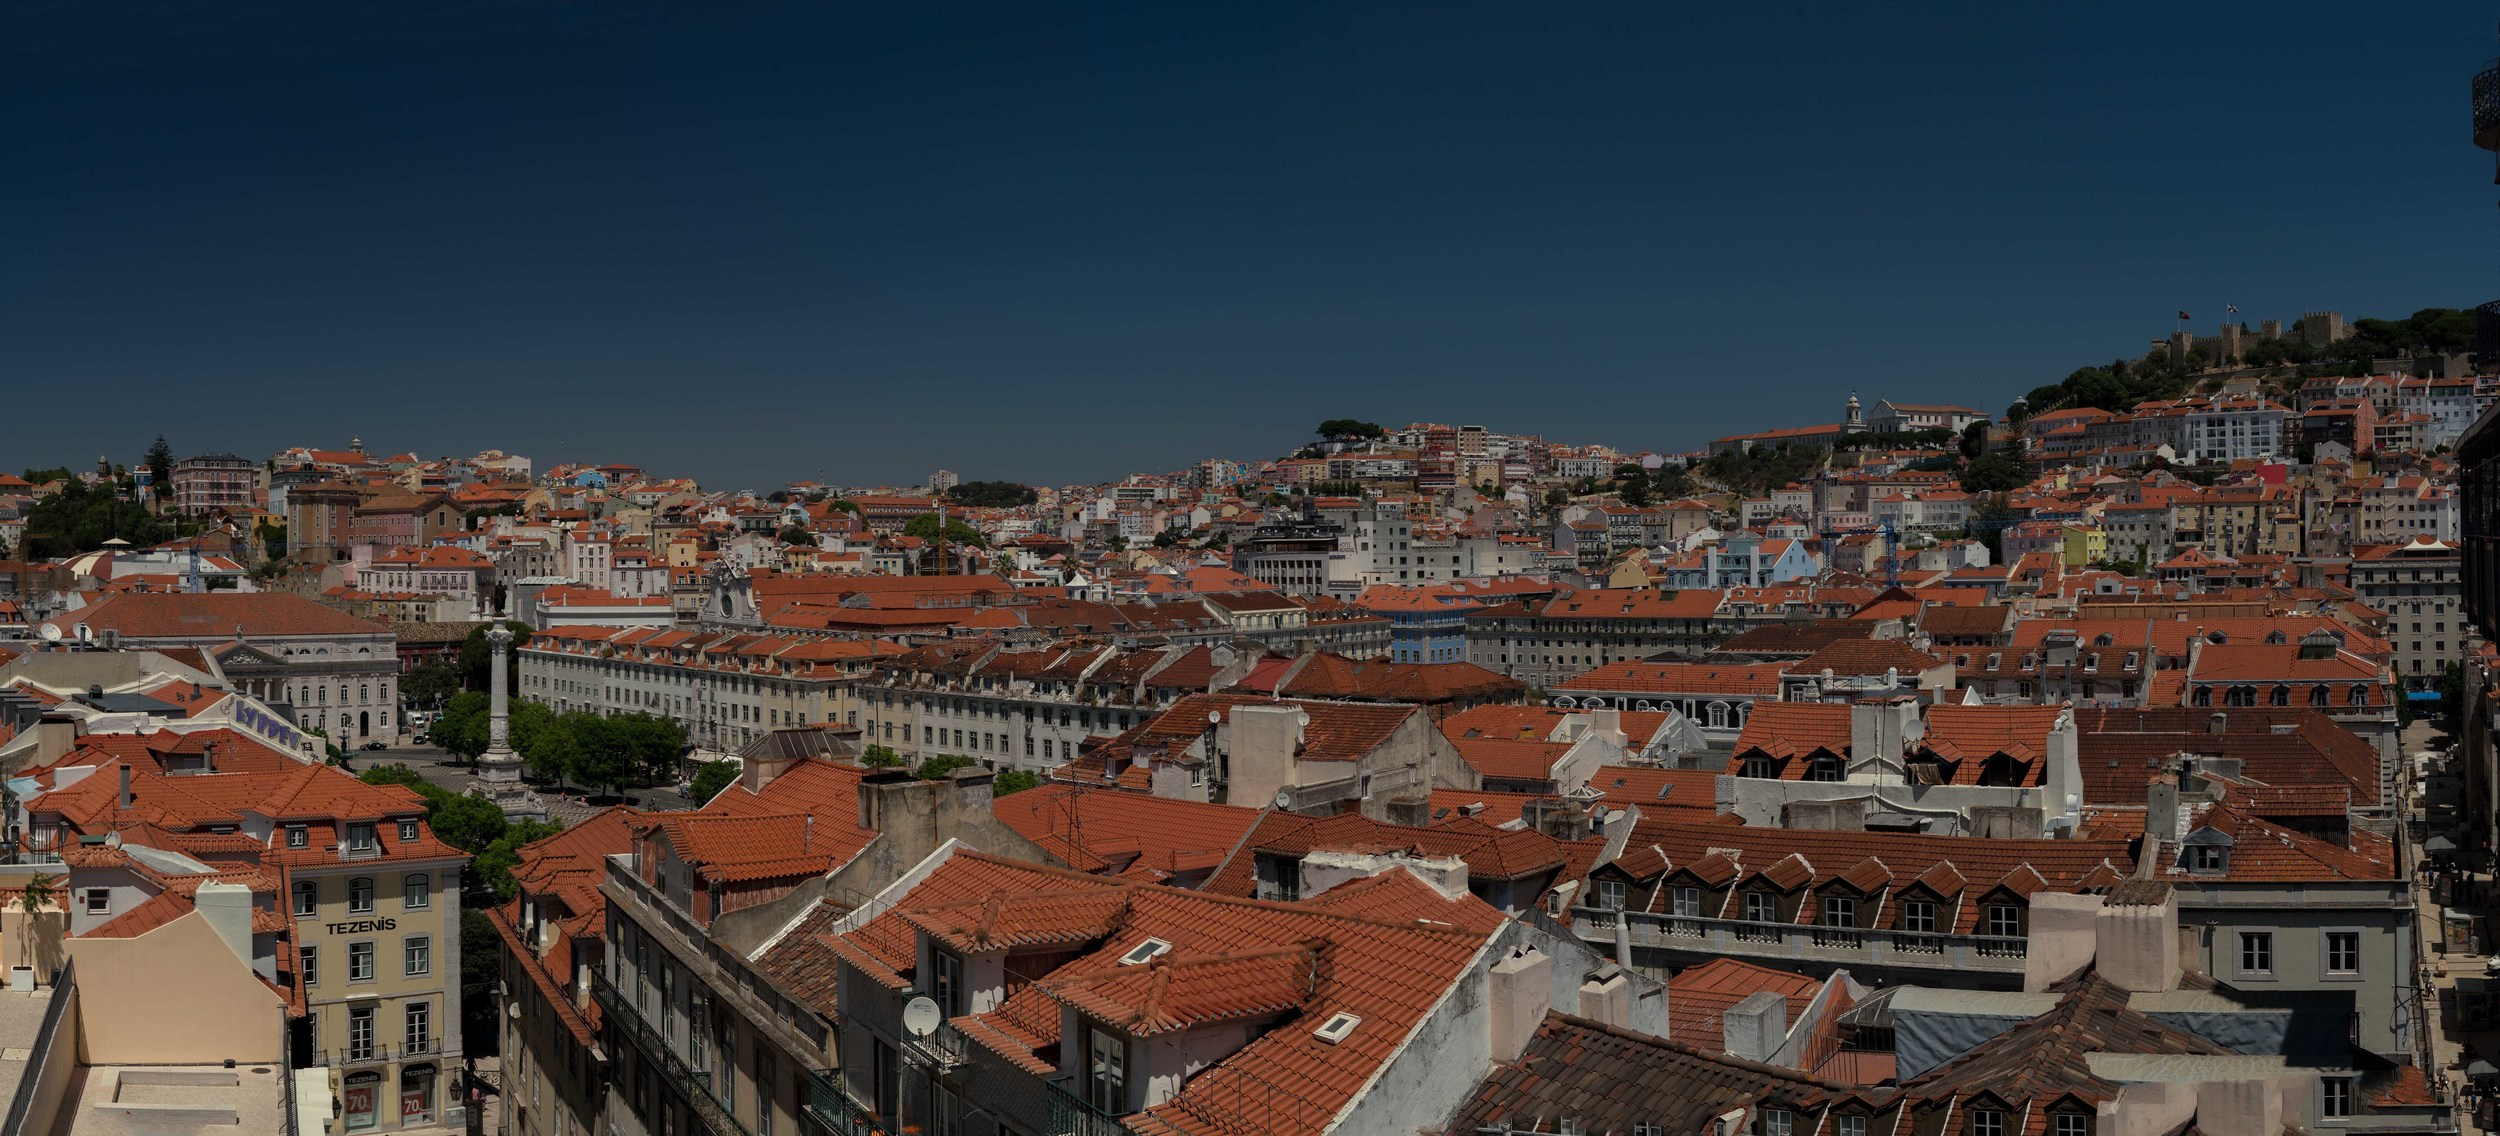 Untitled_Panorama2_sRGB_CO_Relative_Lisbon Overview.jpg